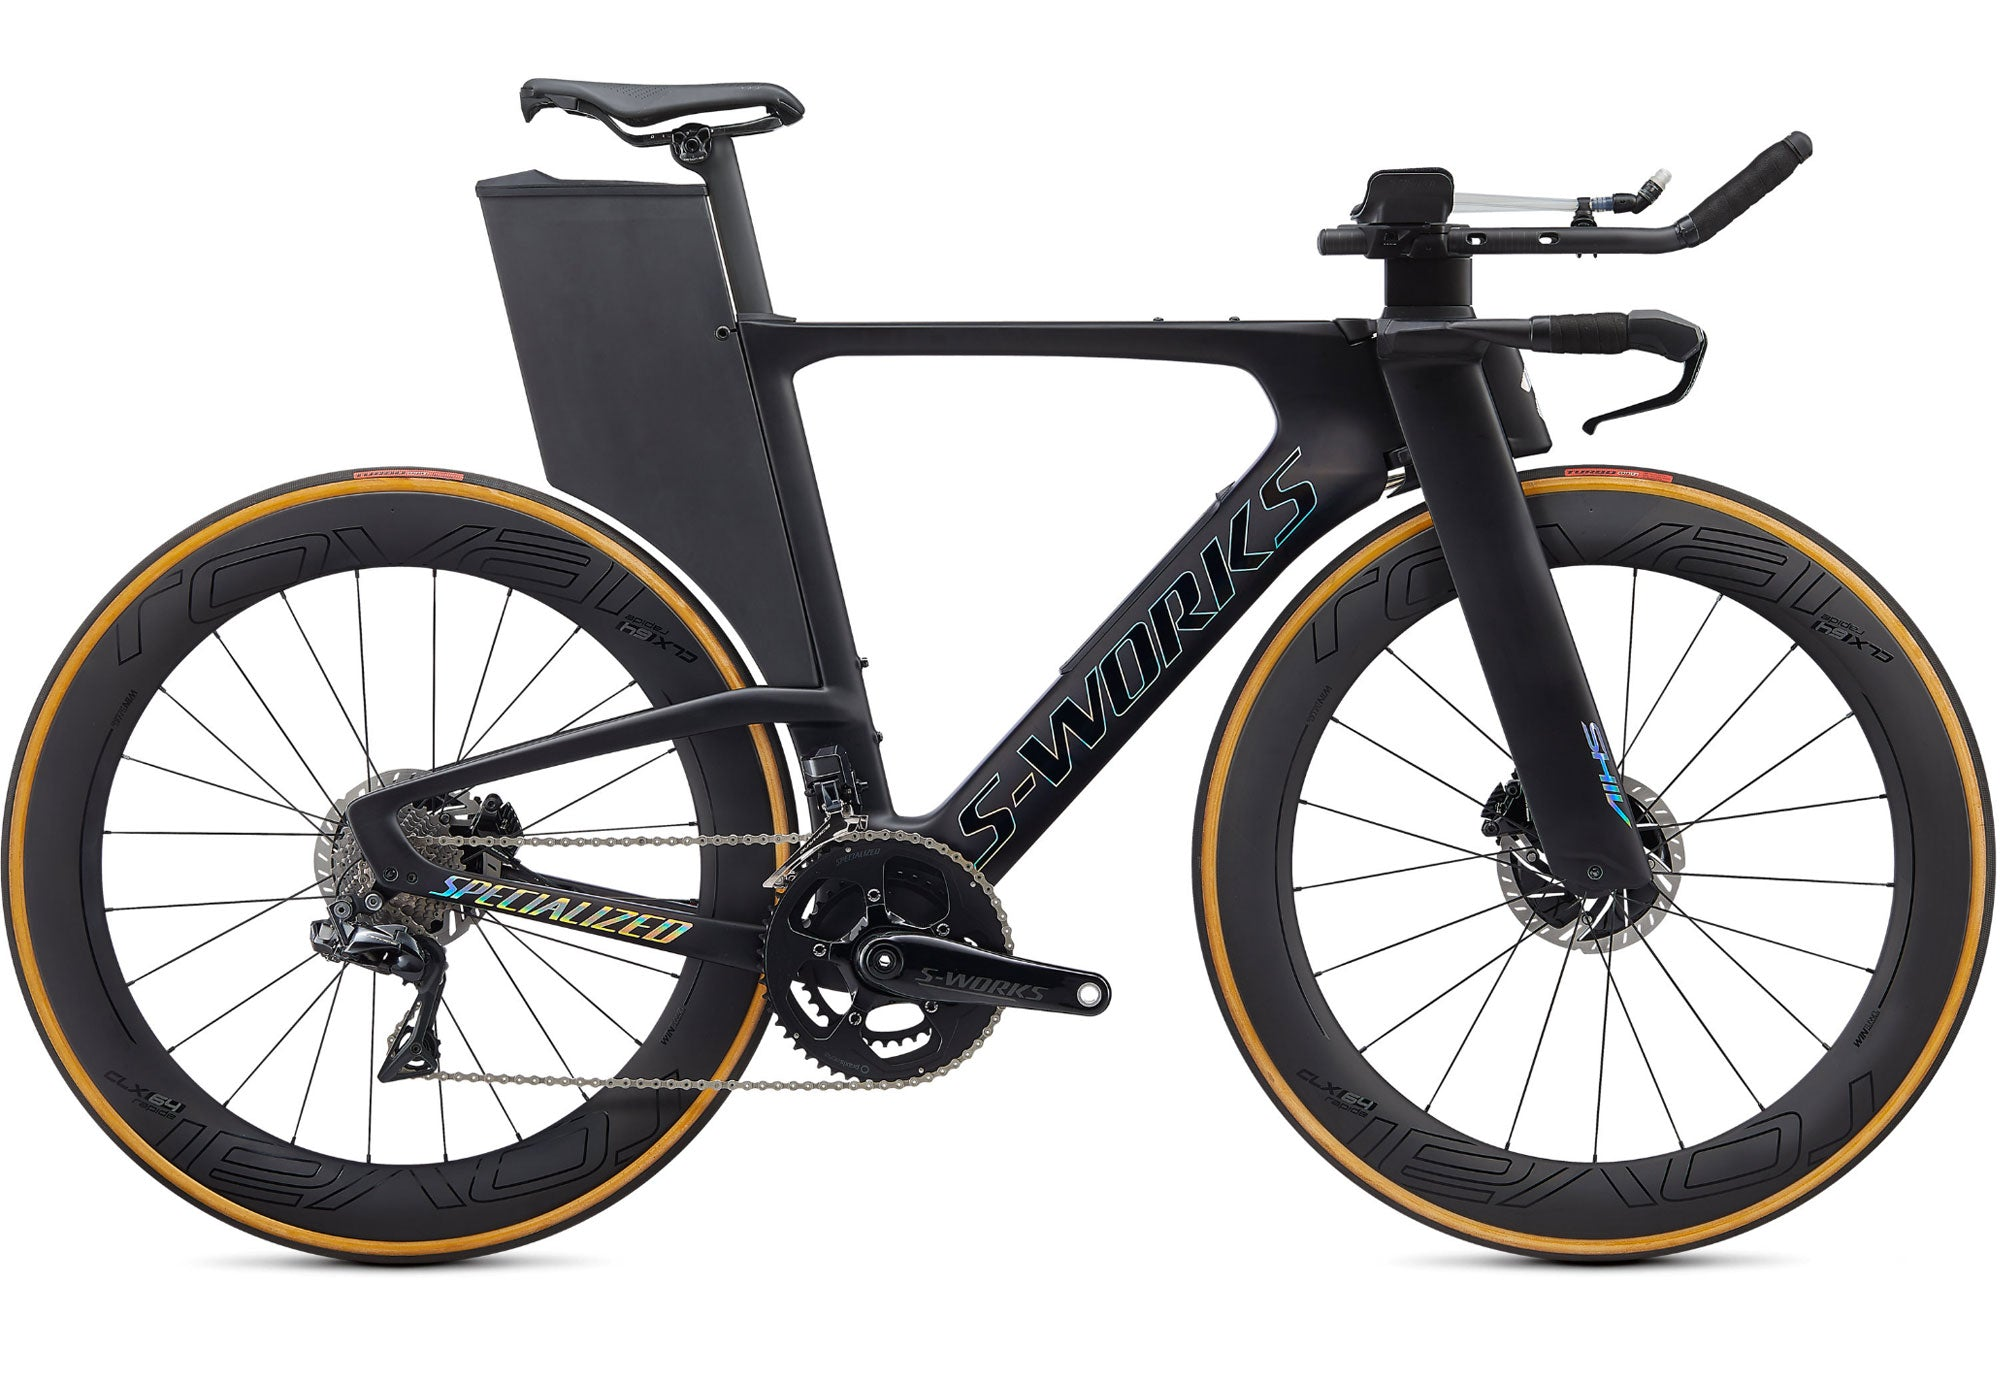 2020 Specialized S-Works Shiv Disc, Satin Carbon Woolys Wheels Sydney